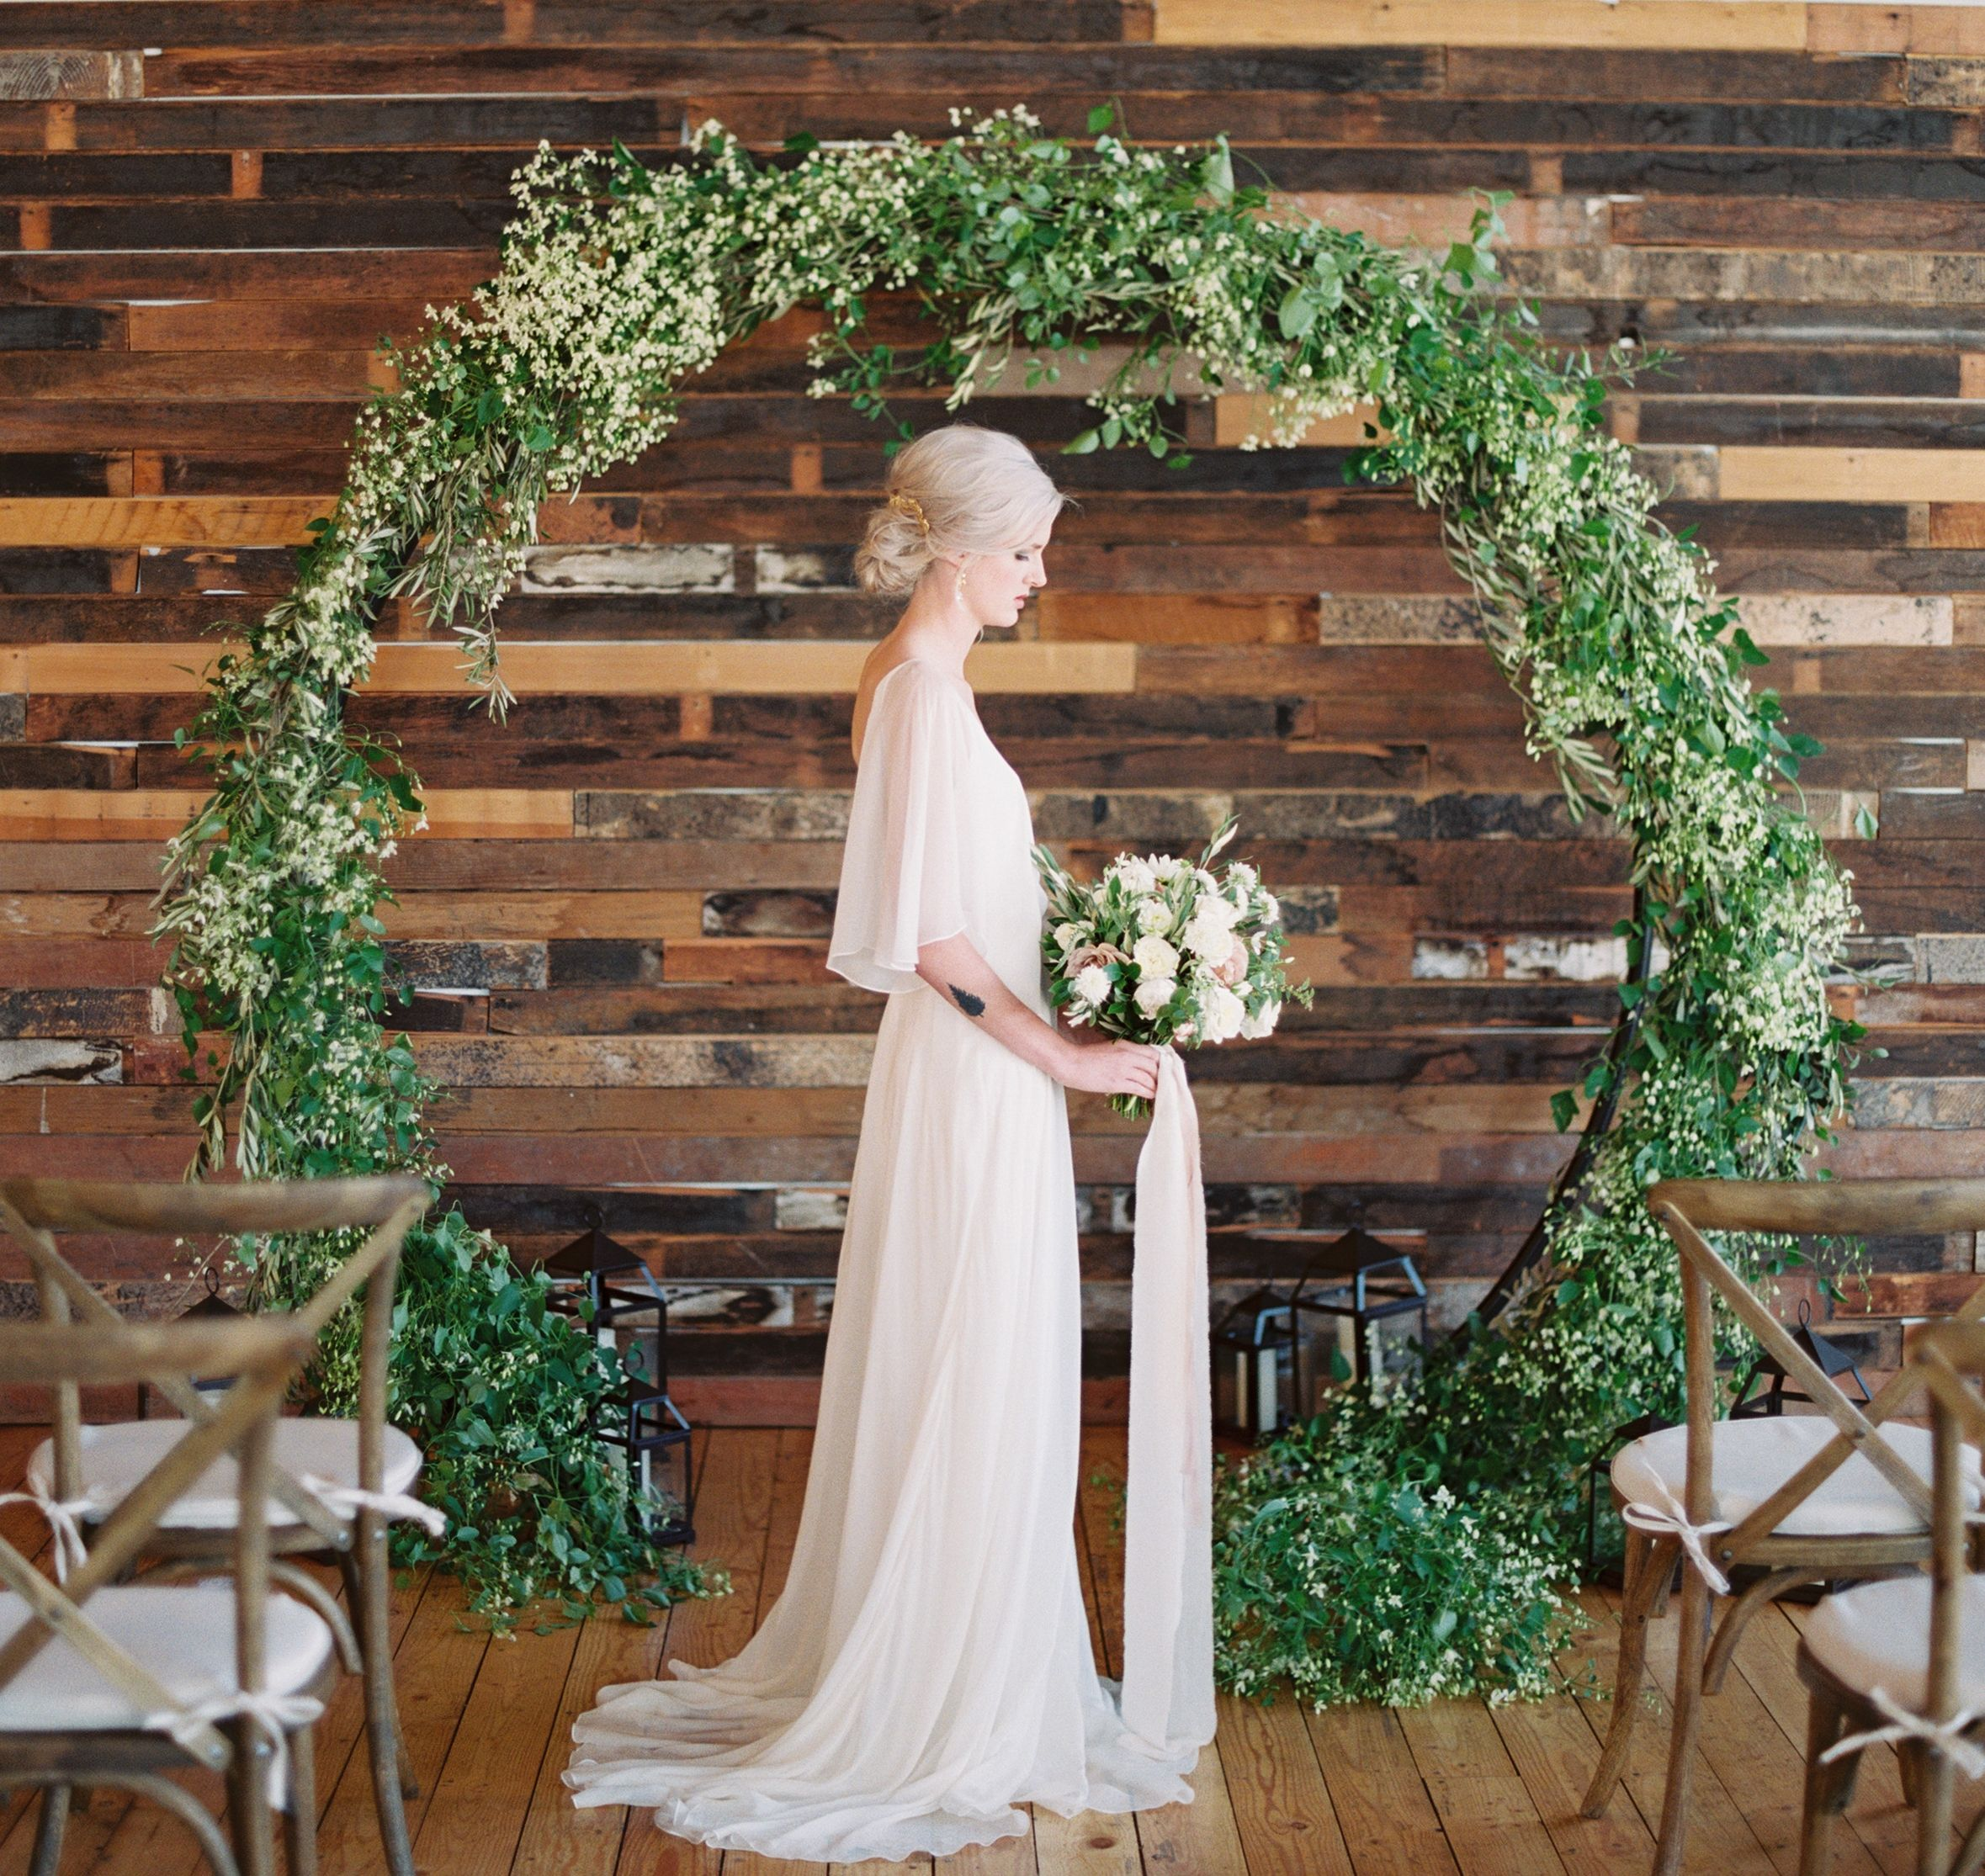 Circle Arbor: Perfect Wedding Backdrop For The Ceremony